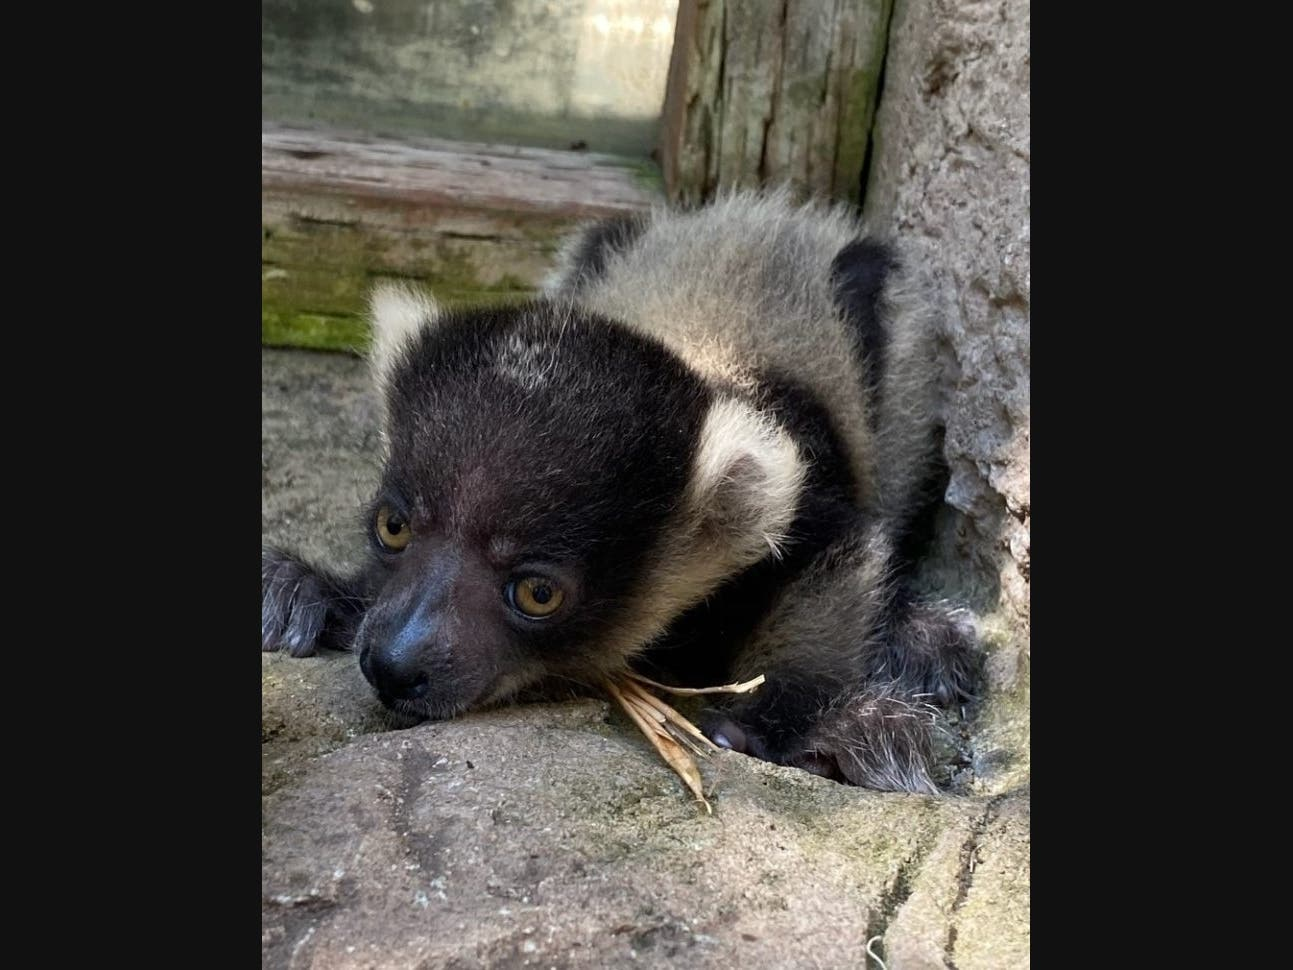 Can You Help Name The New Lemur Pup At Happy Hollow Zoo?